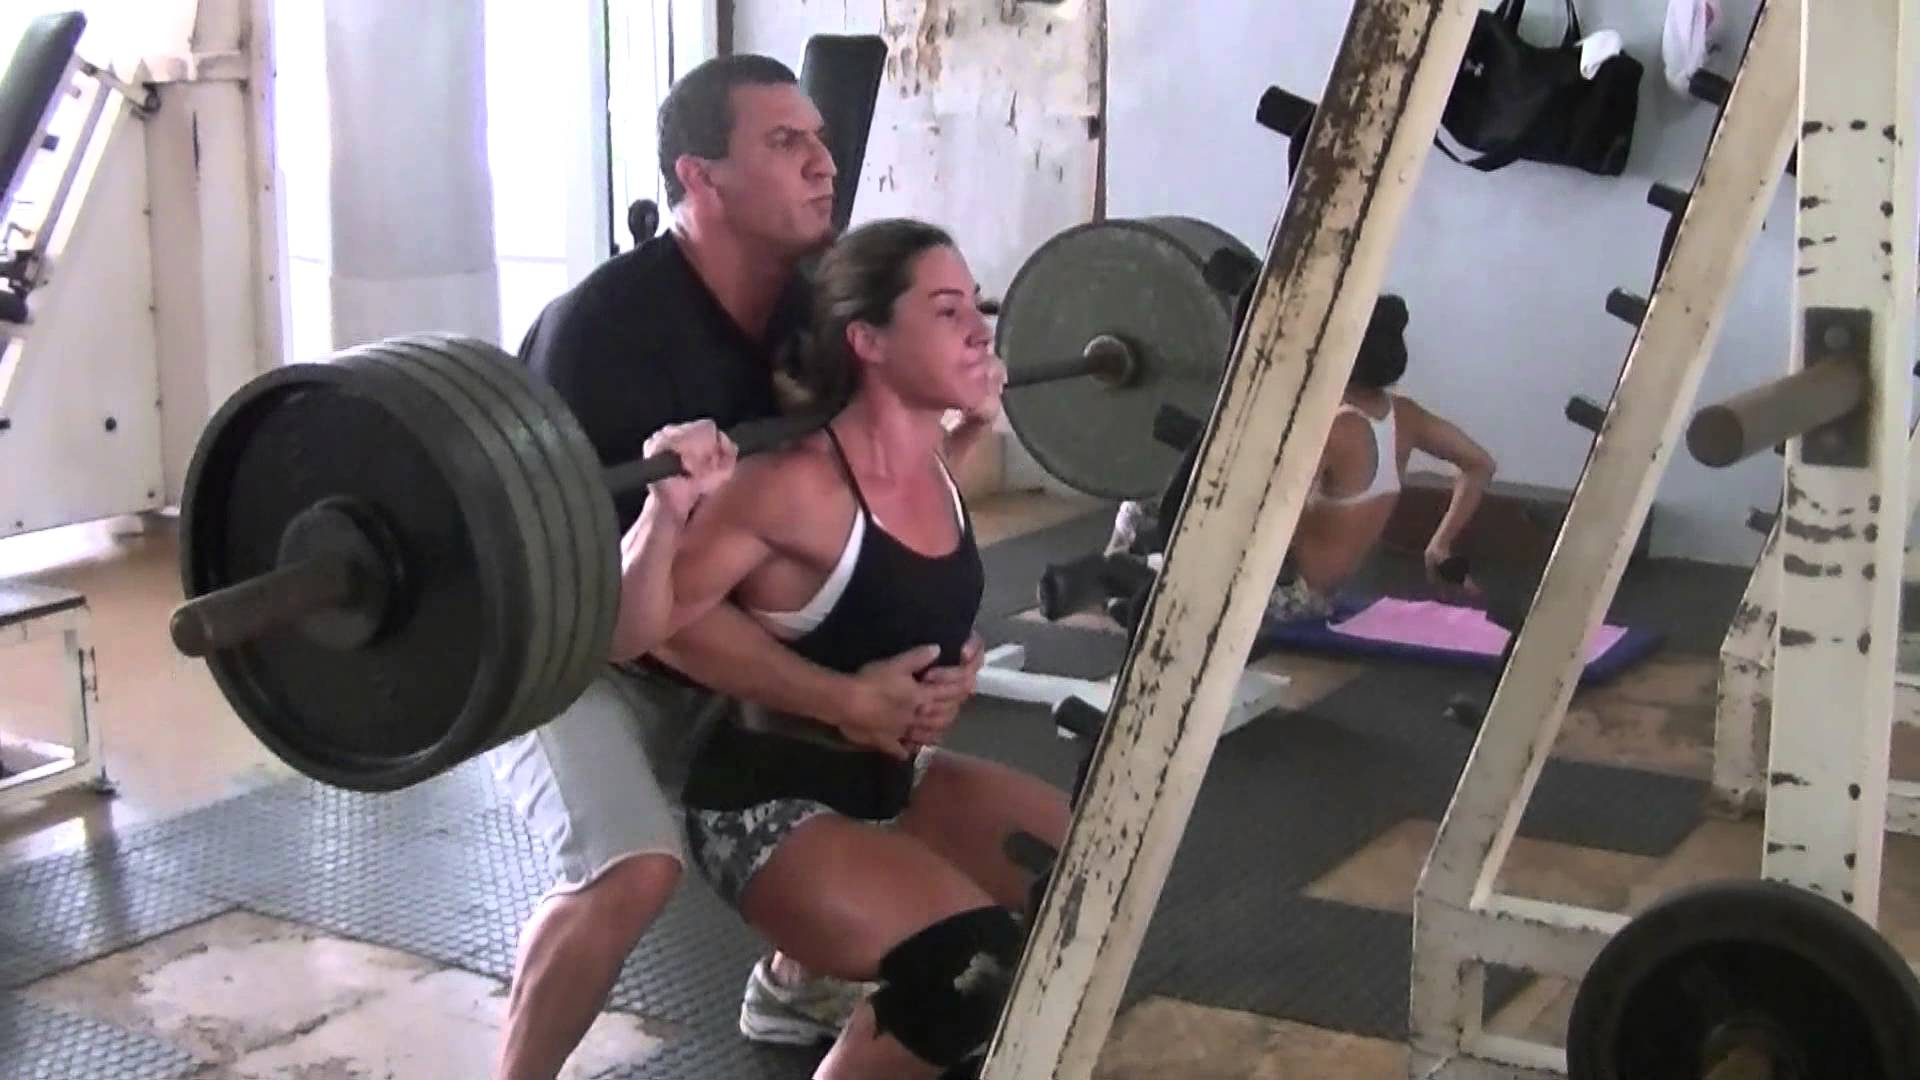 Flávia Carvalho – The Strongest Woman In Brazil